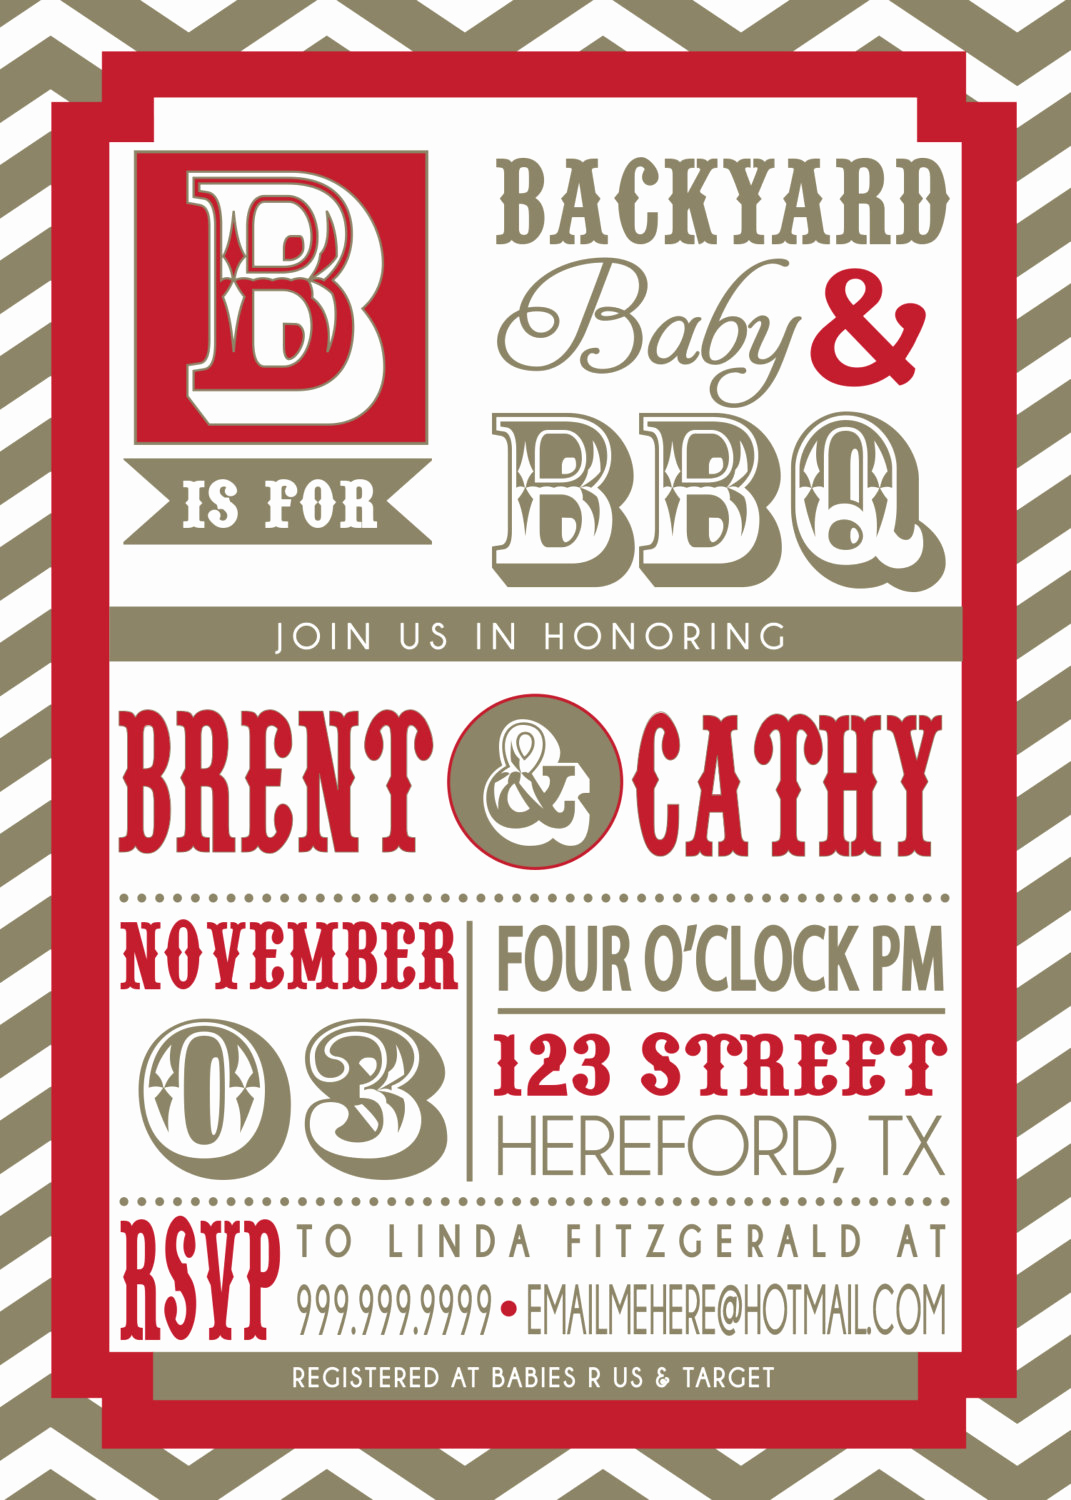 Baby Shower Bbq Invitation Best Of Couples Bbq Baby Shower Invitation by Sldesignteam On Etsy